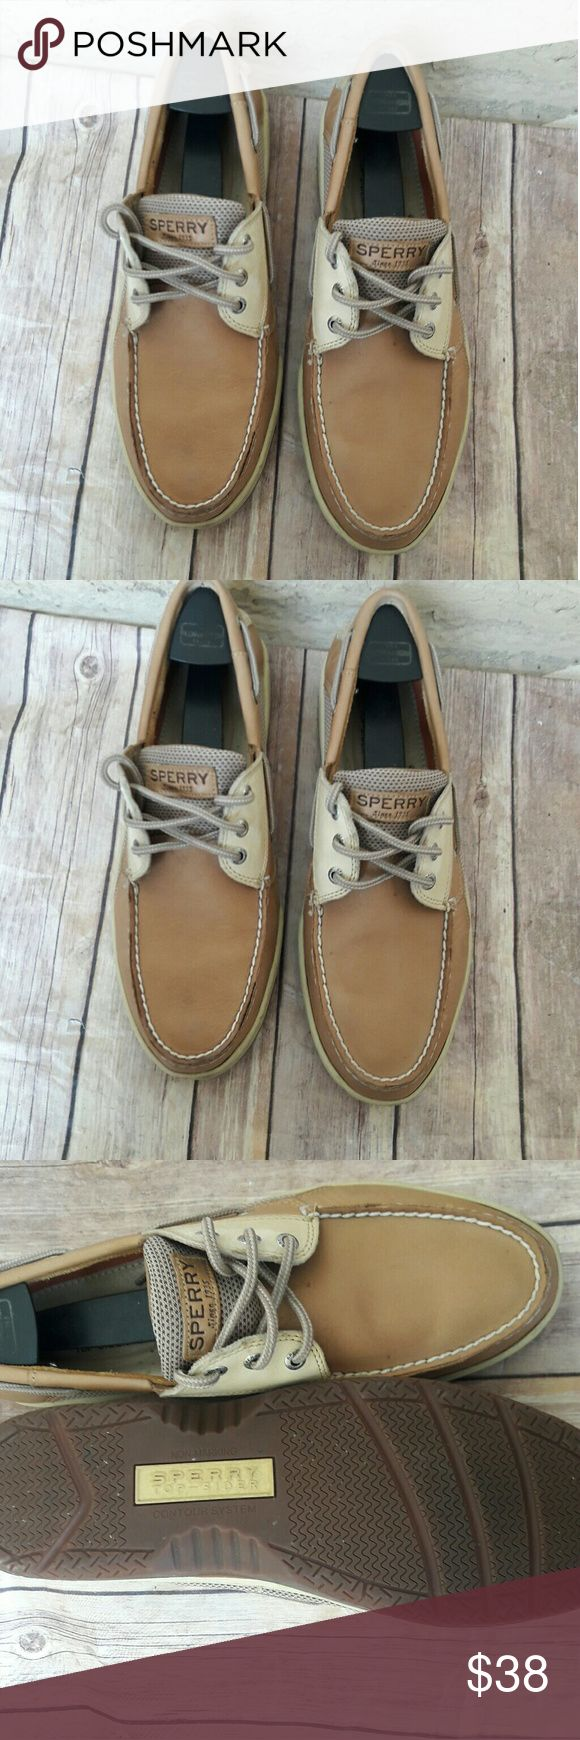 Sperry top-sider men's loafers size 11.5M Excellent pre-owned condition. Sperry Top-Sider Shoes Loafers & Slip-Ons